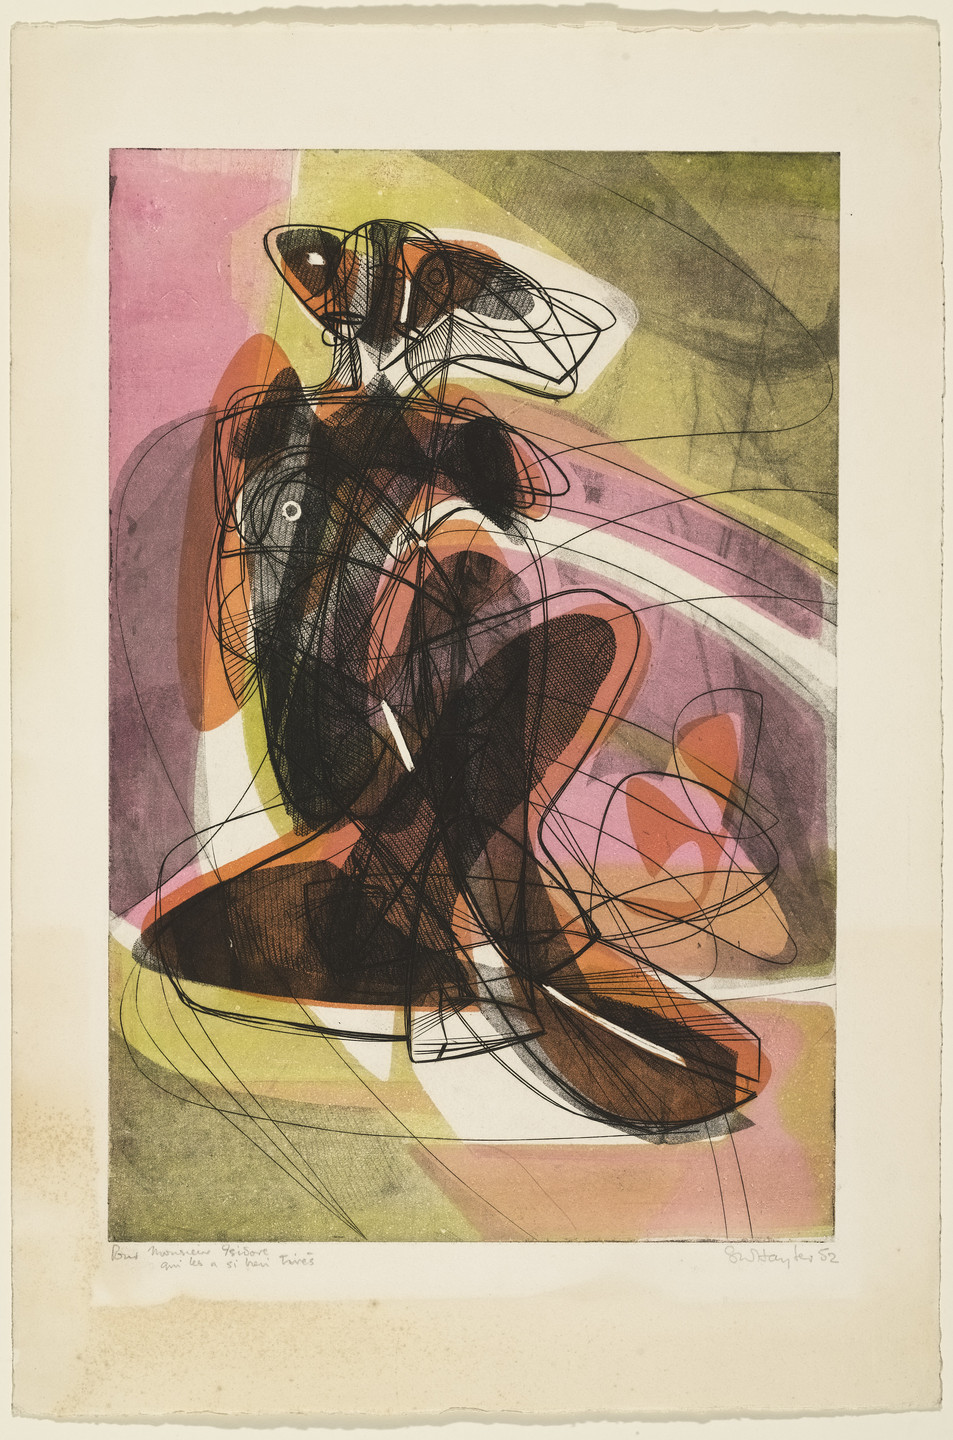 Stanley William Hayter. The Couple. 1952